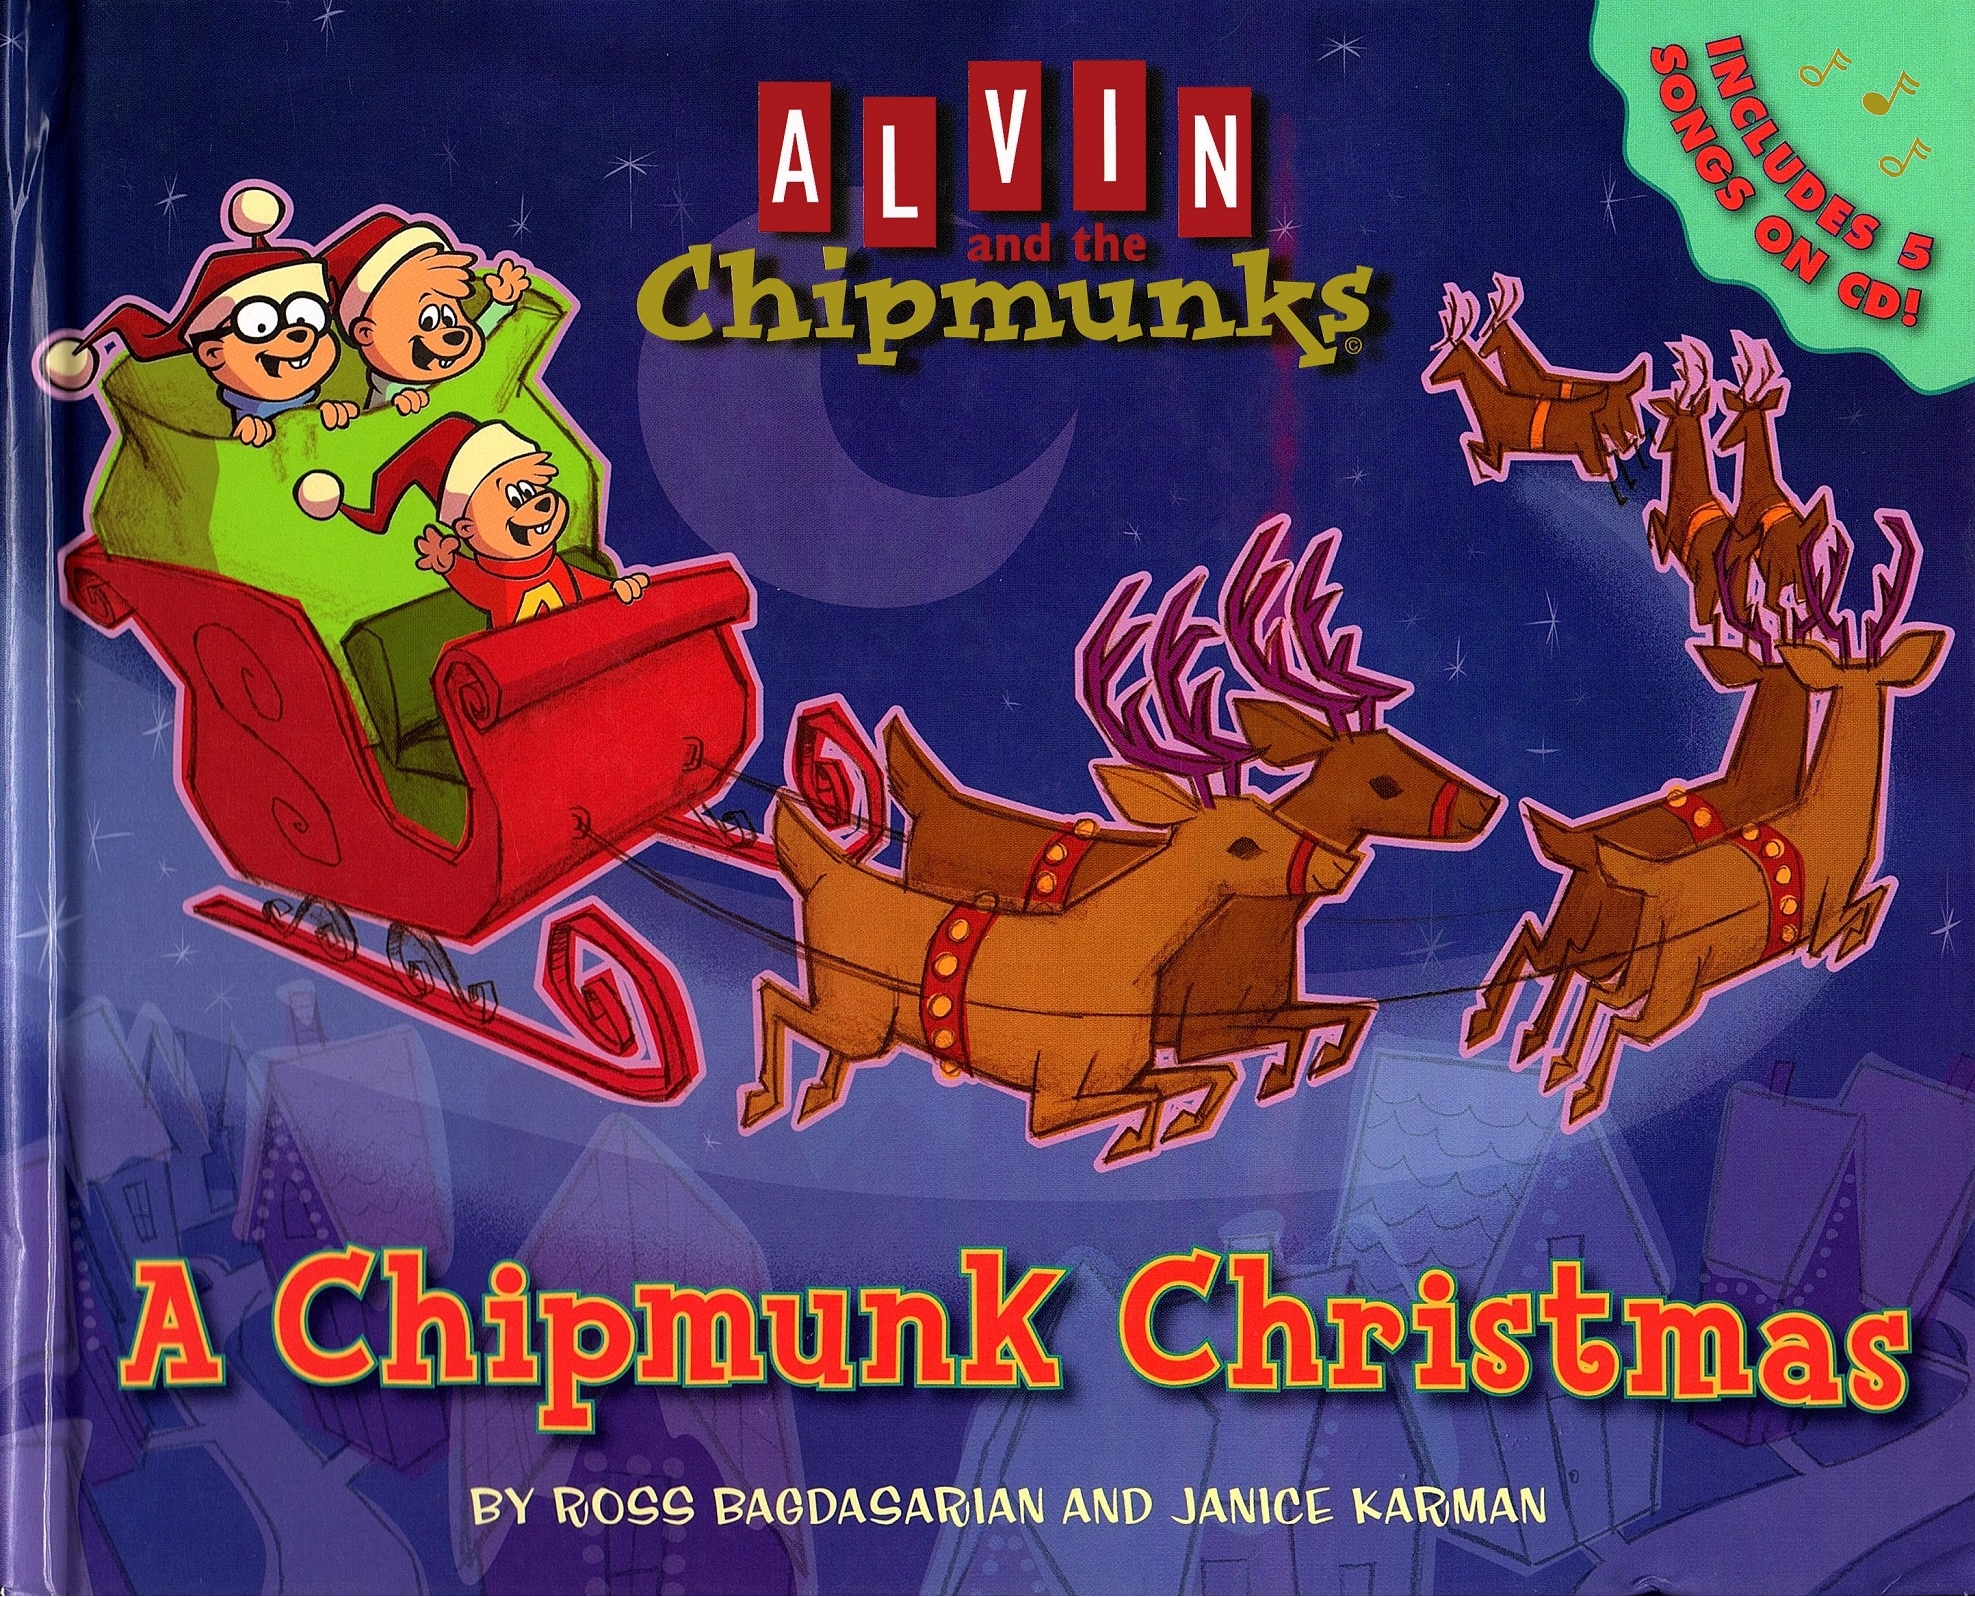 Alvin And The Chipmunks Christmas.Alvin And The Chipmunks A Chipmunk Christmas With Cd